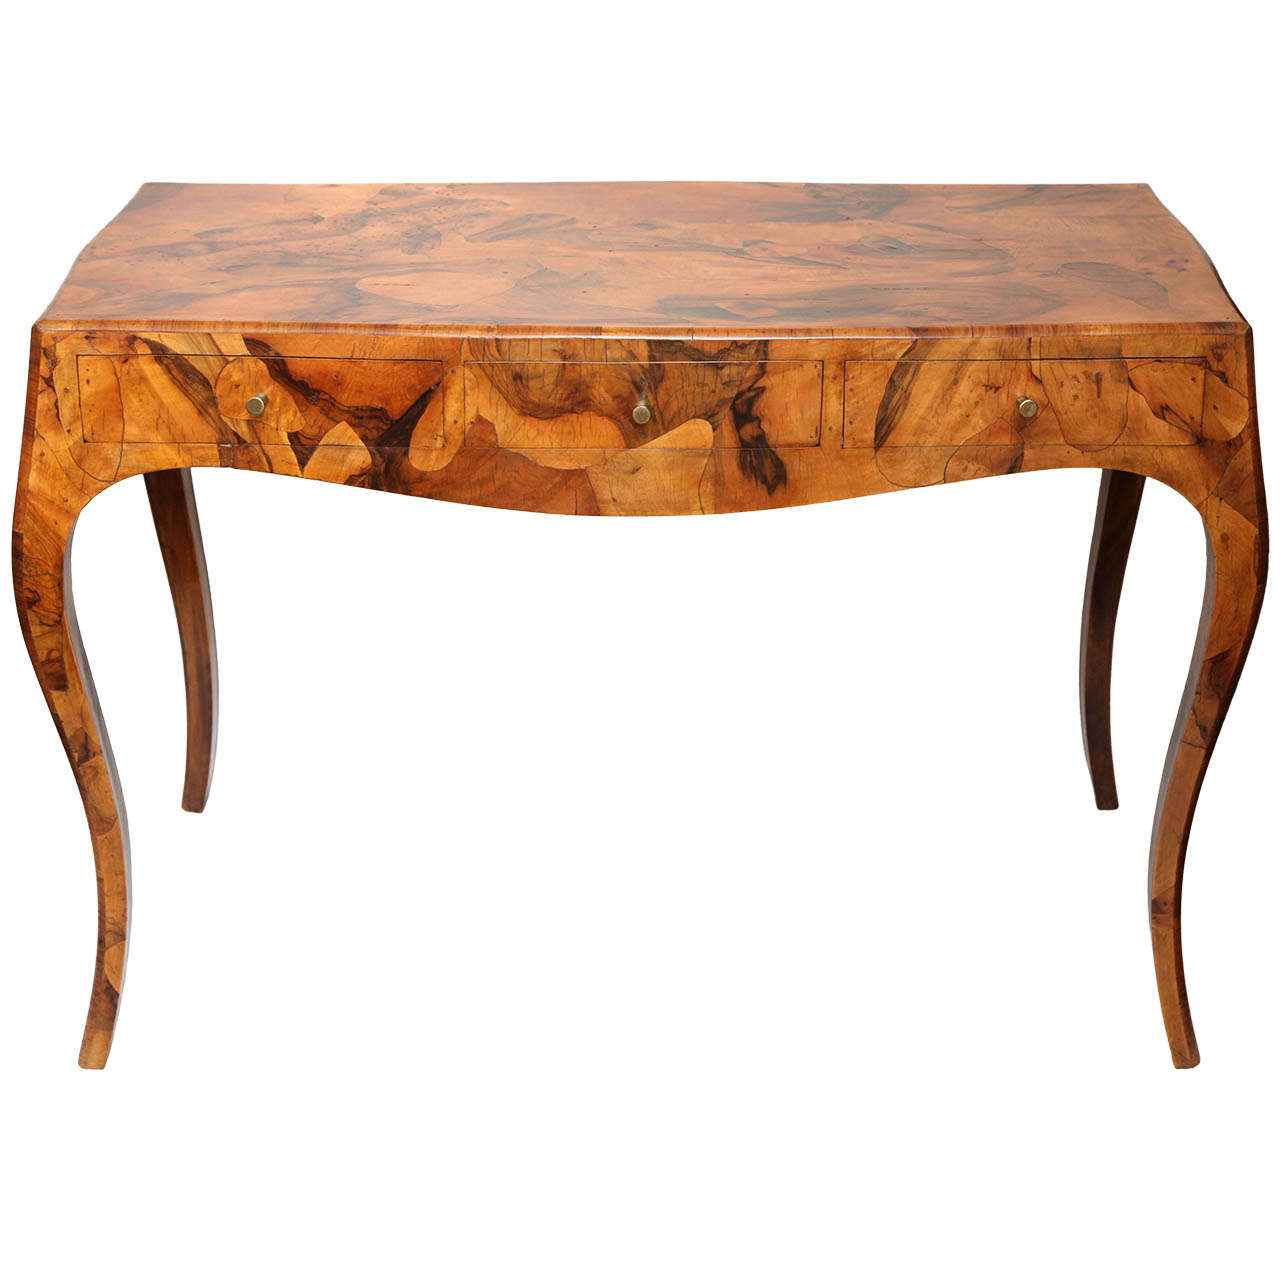 An Italian Art Moderne Console Desk Of Exotic Woods At 1stdibs